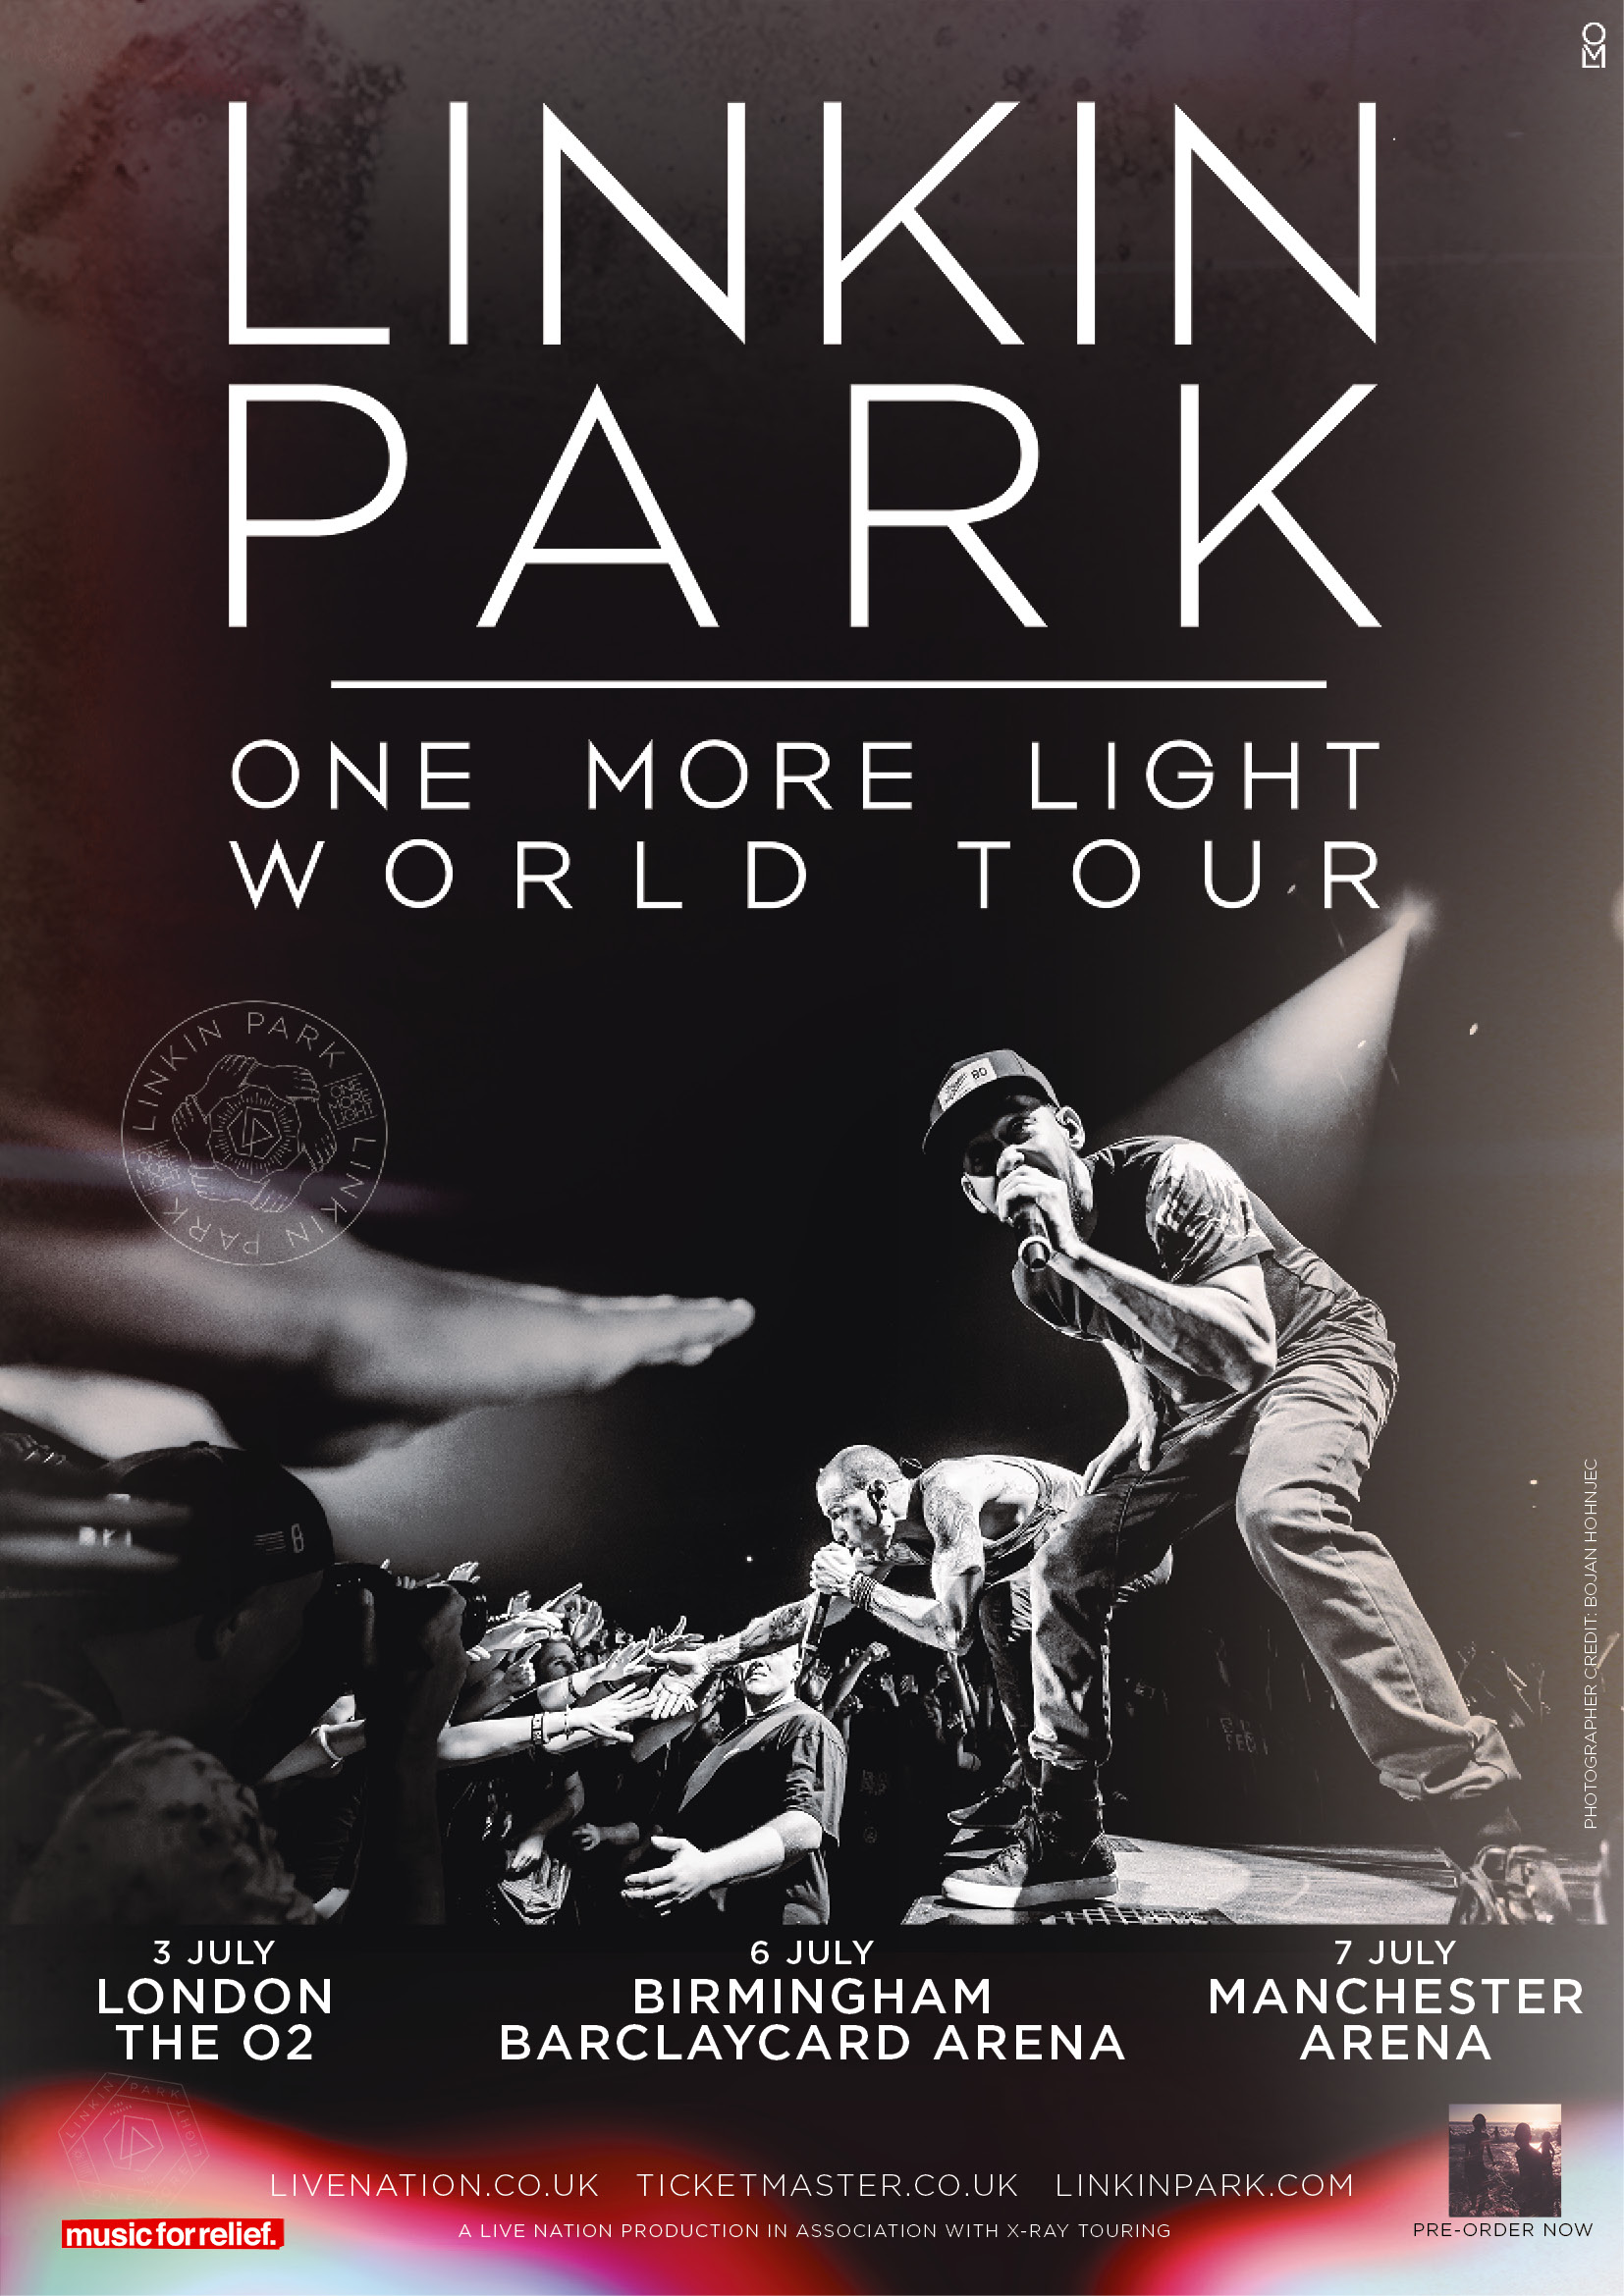 Linkin Park Tour Image 2017